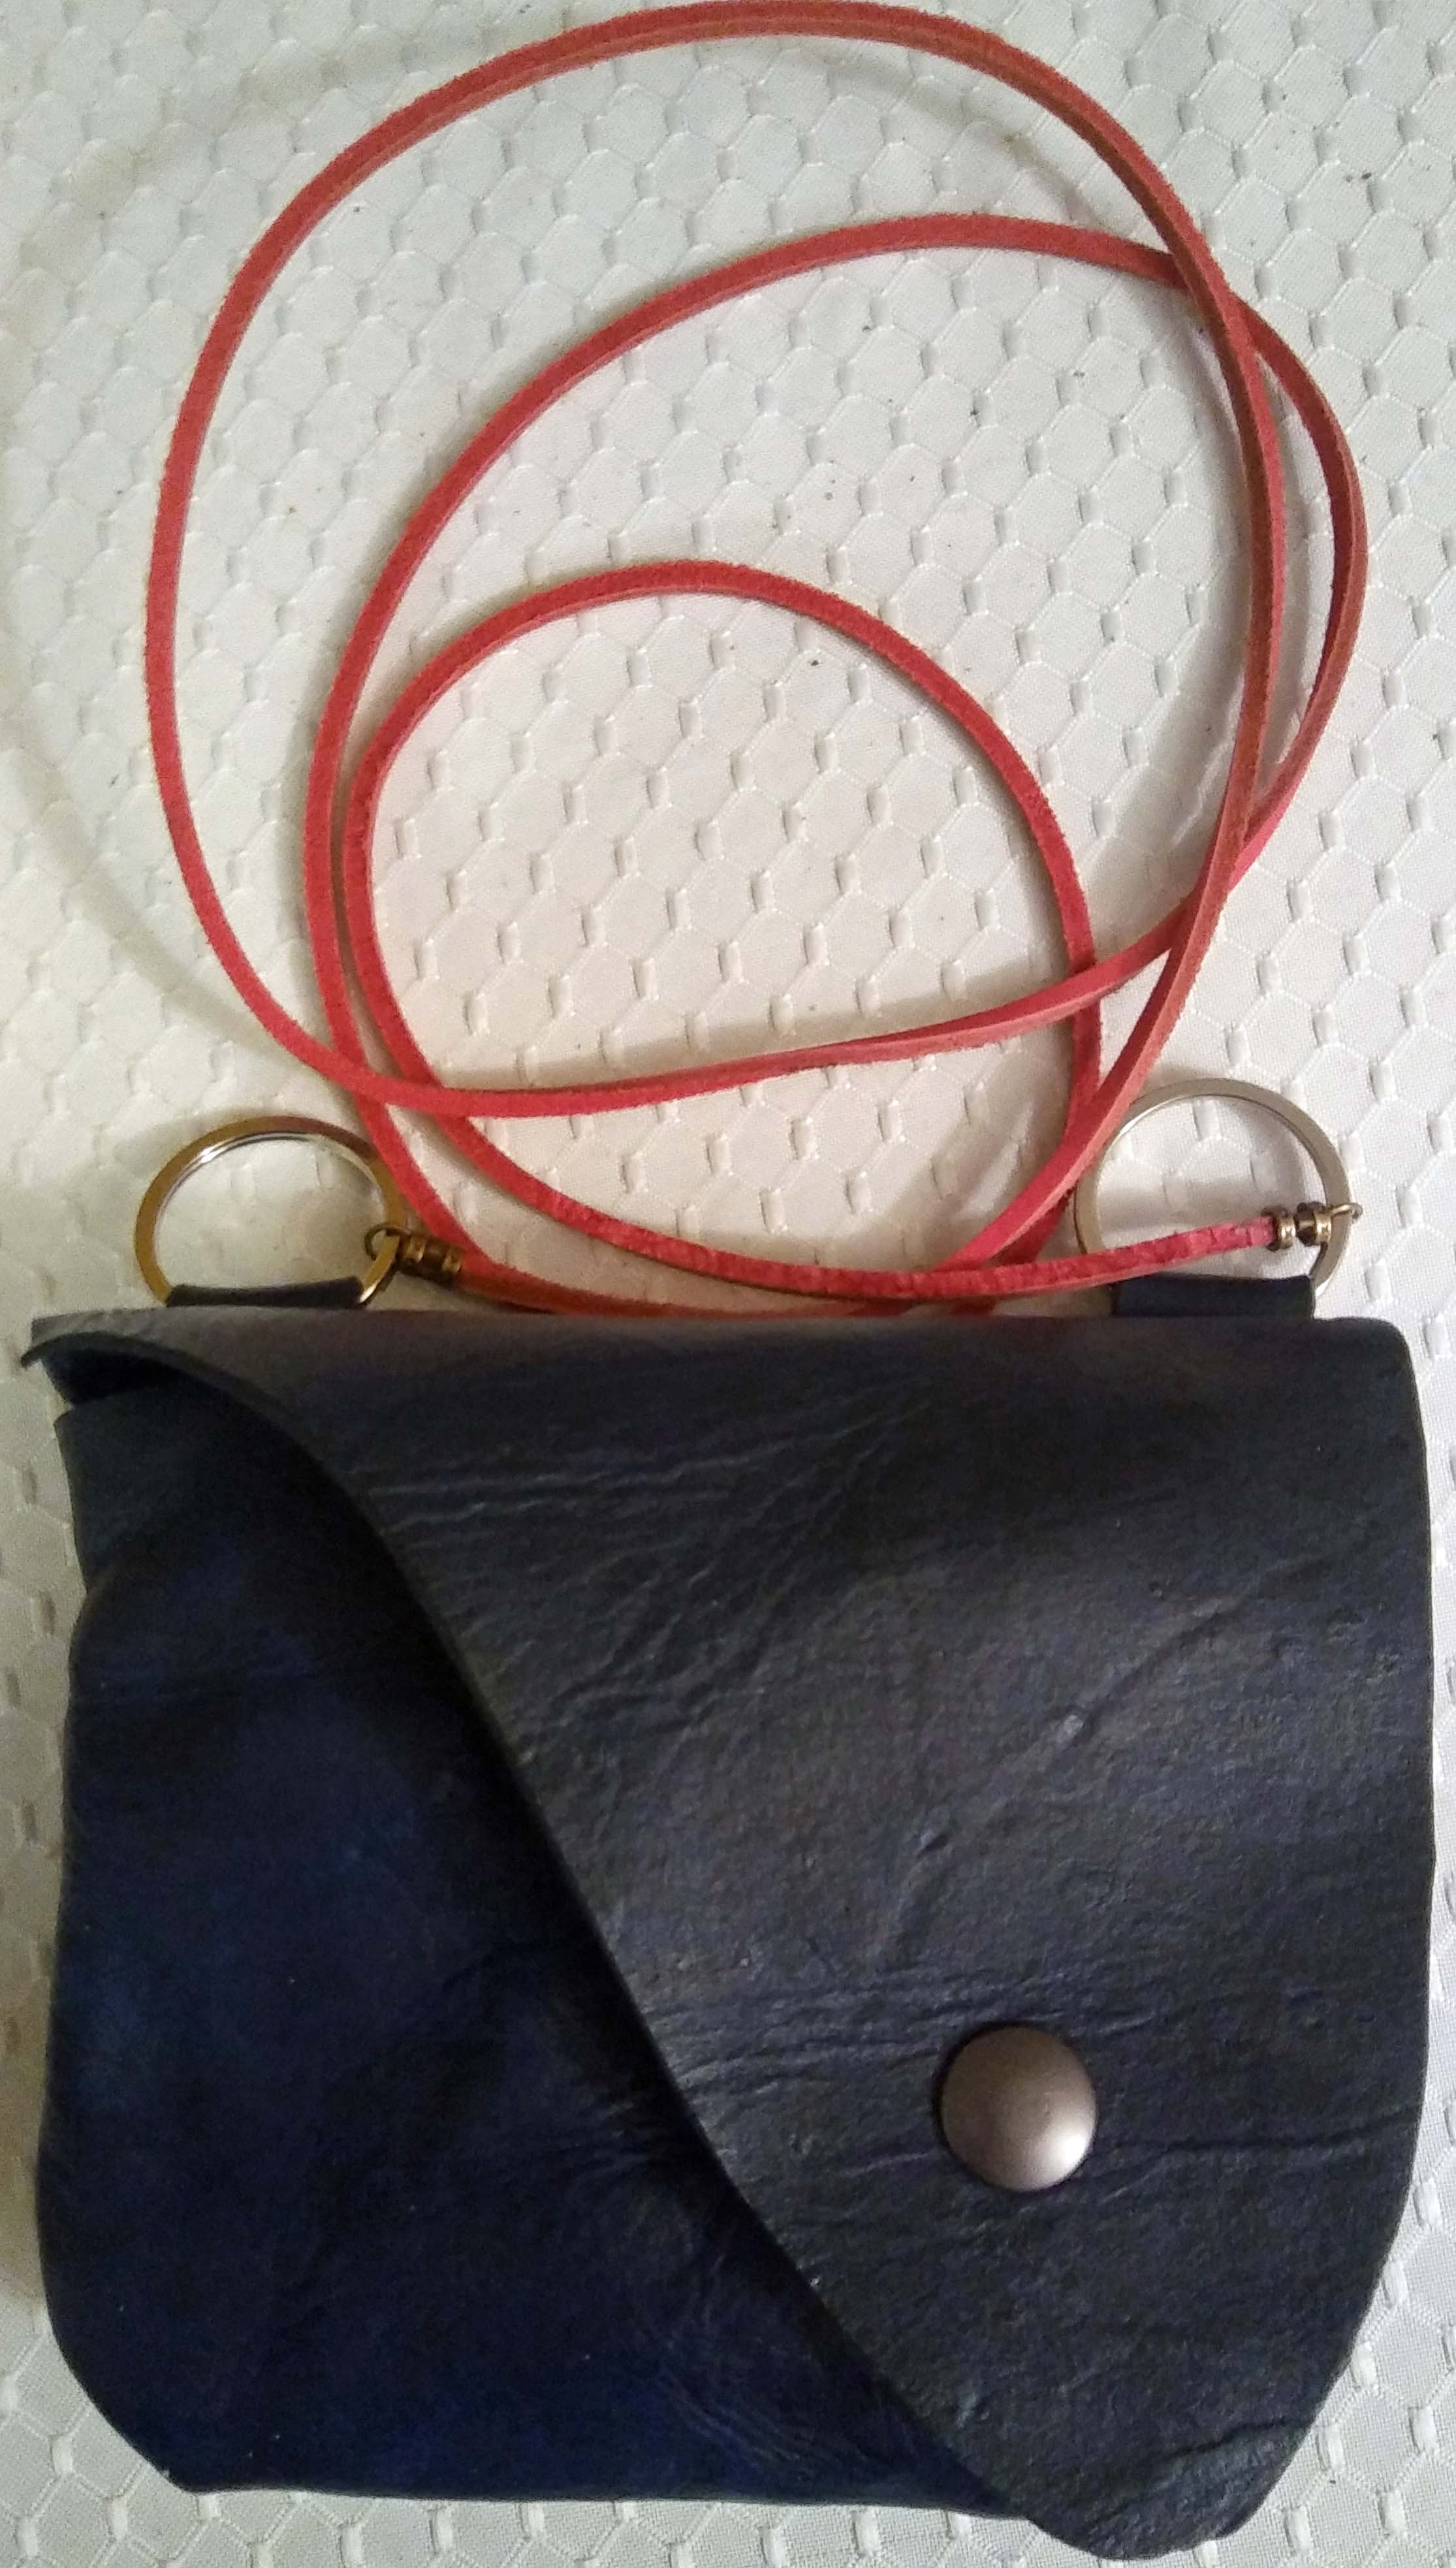 Leather-bag with red leather cord